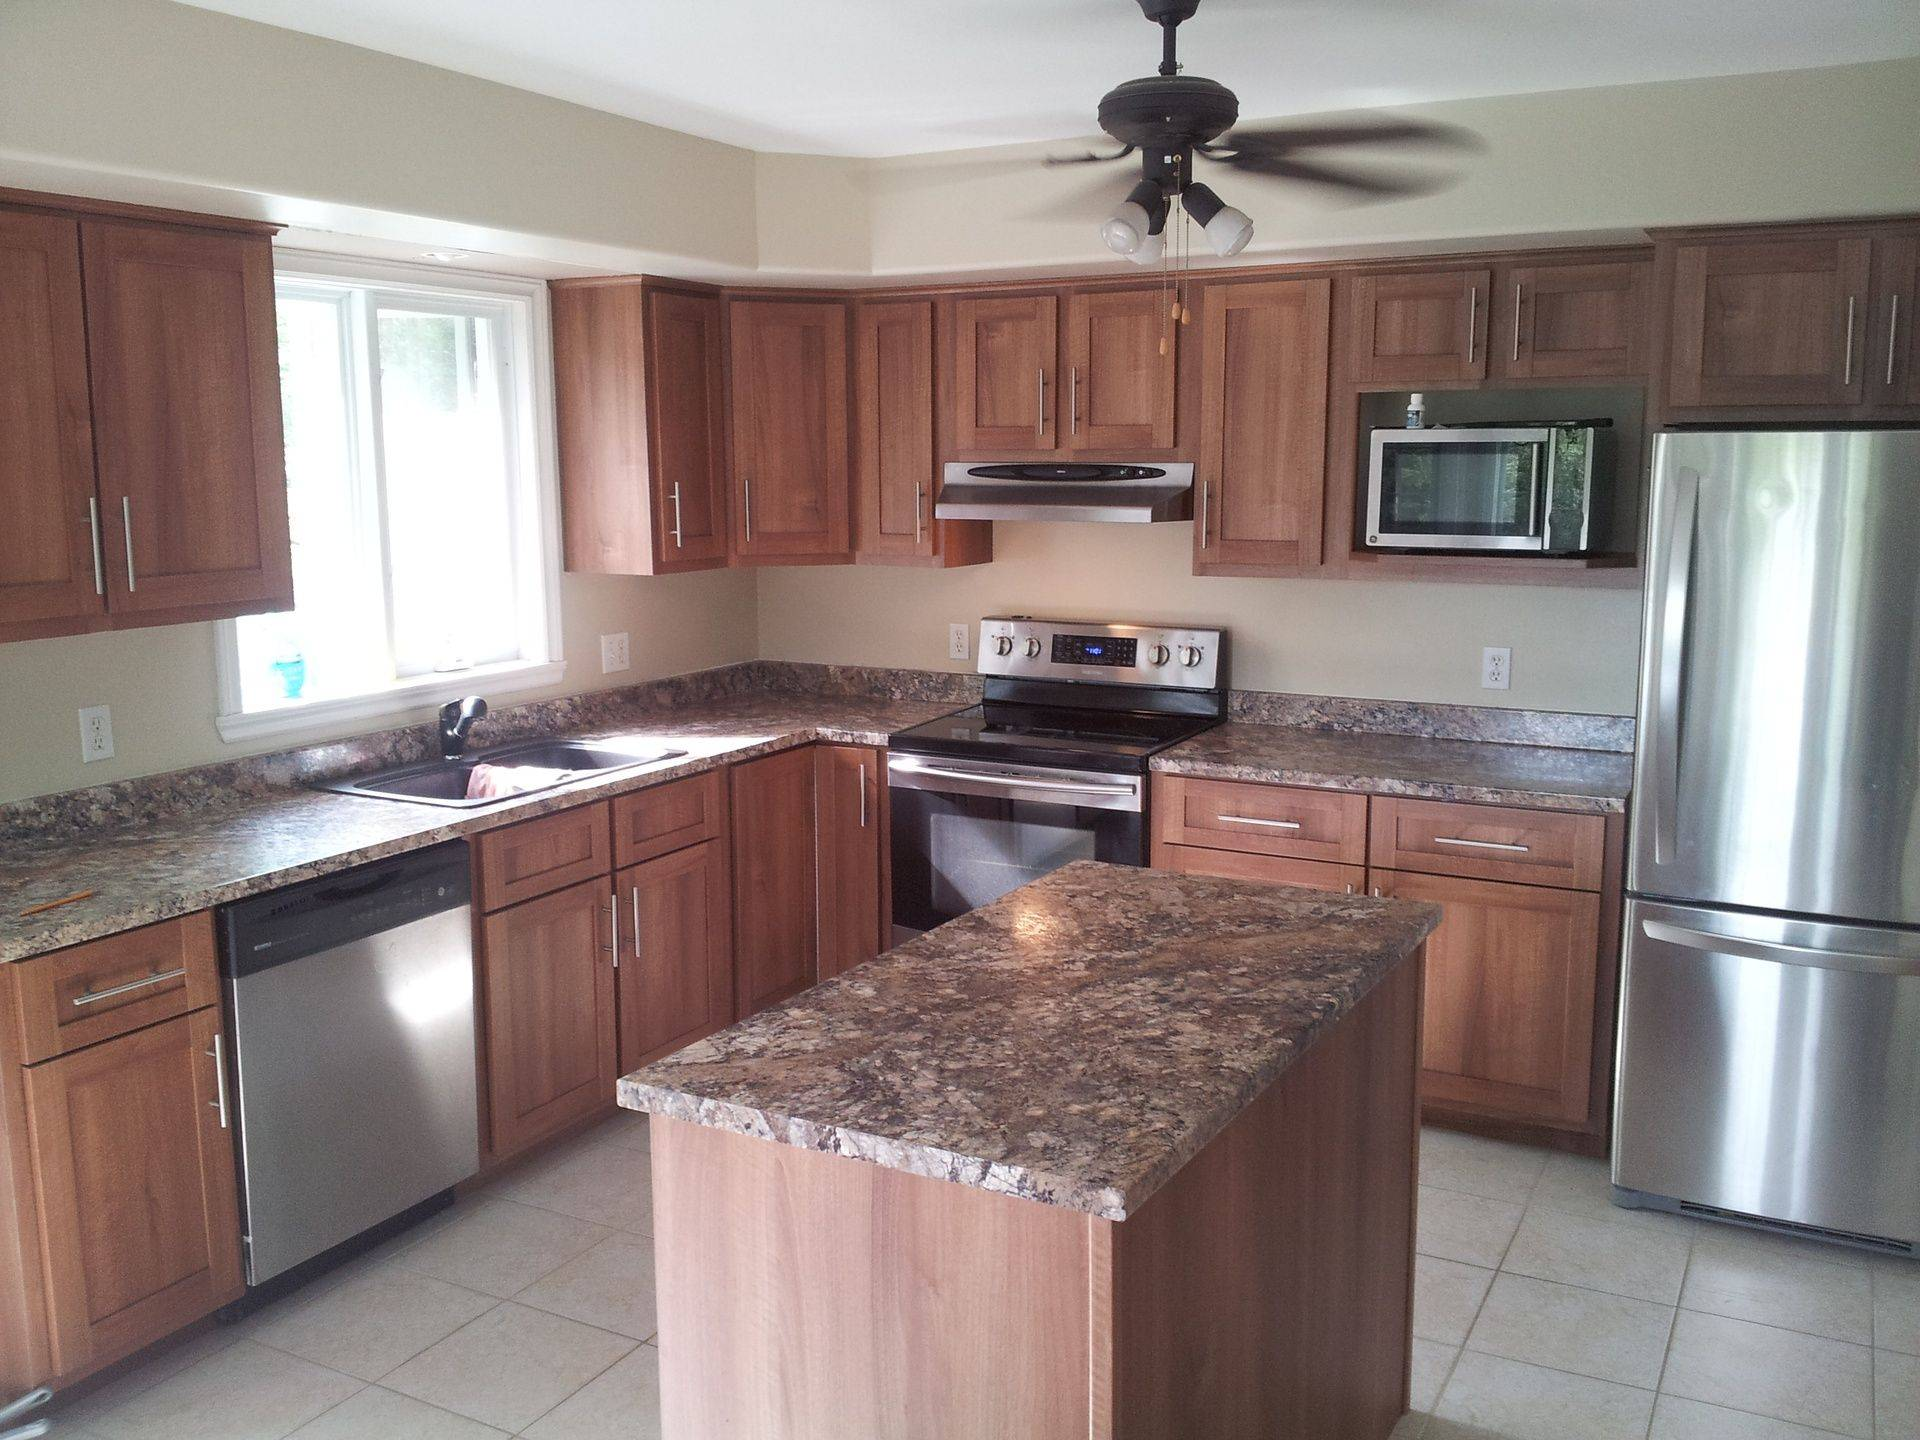 Halifax,Dartmouth,Laminate Countertop Replacemnt